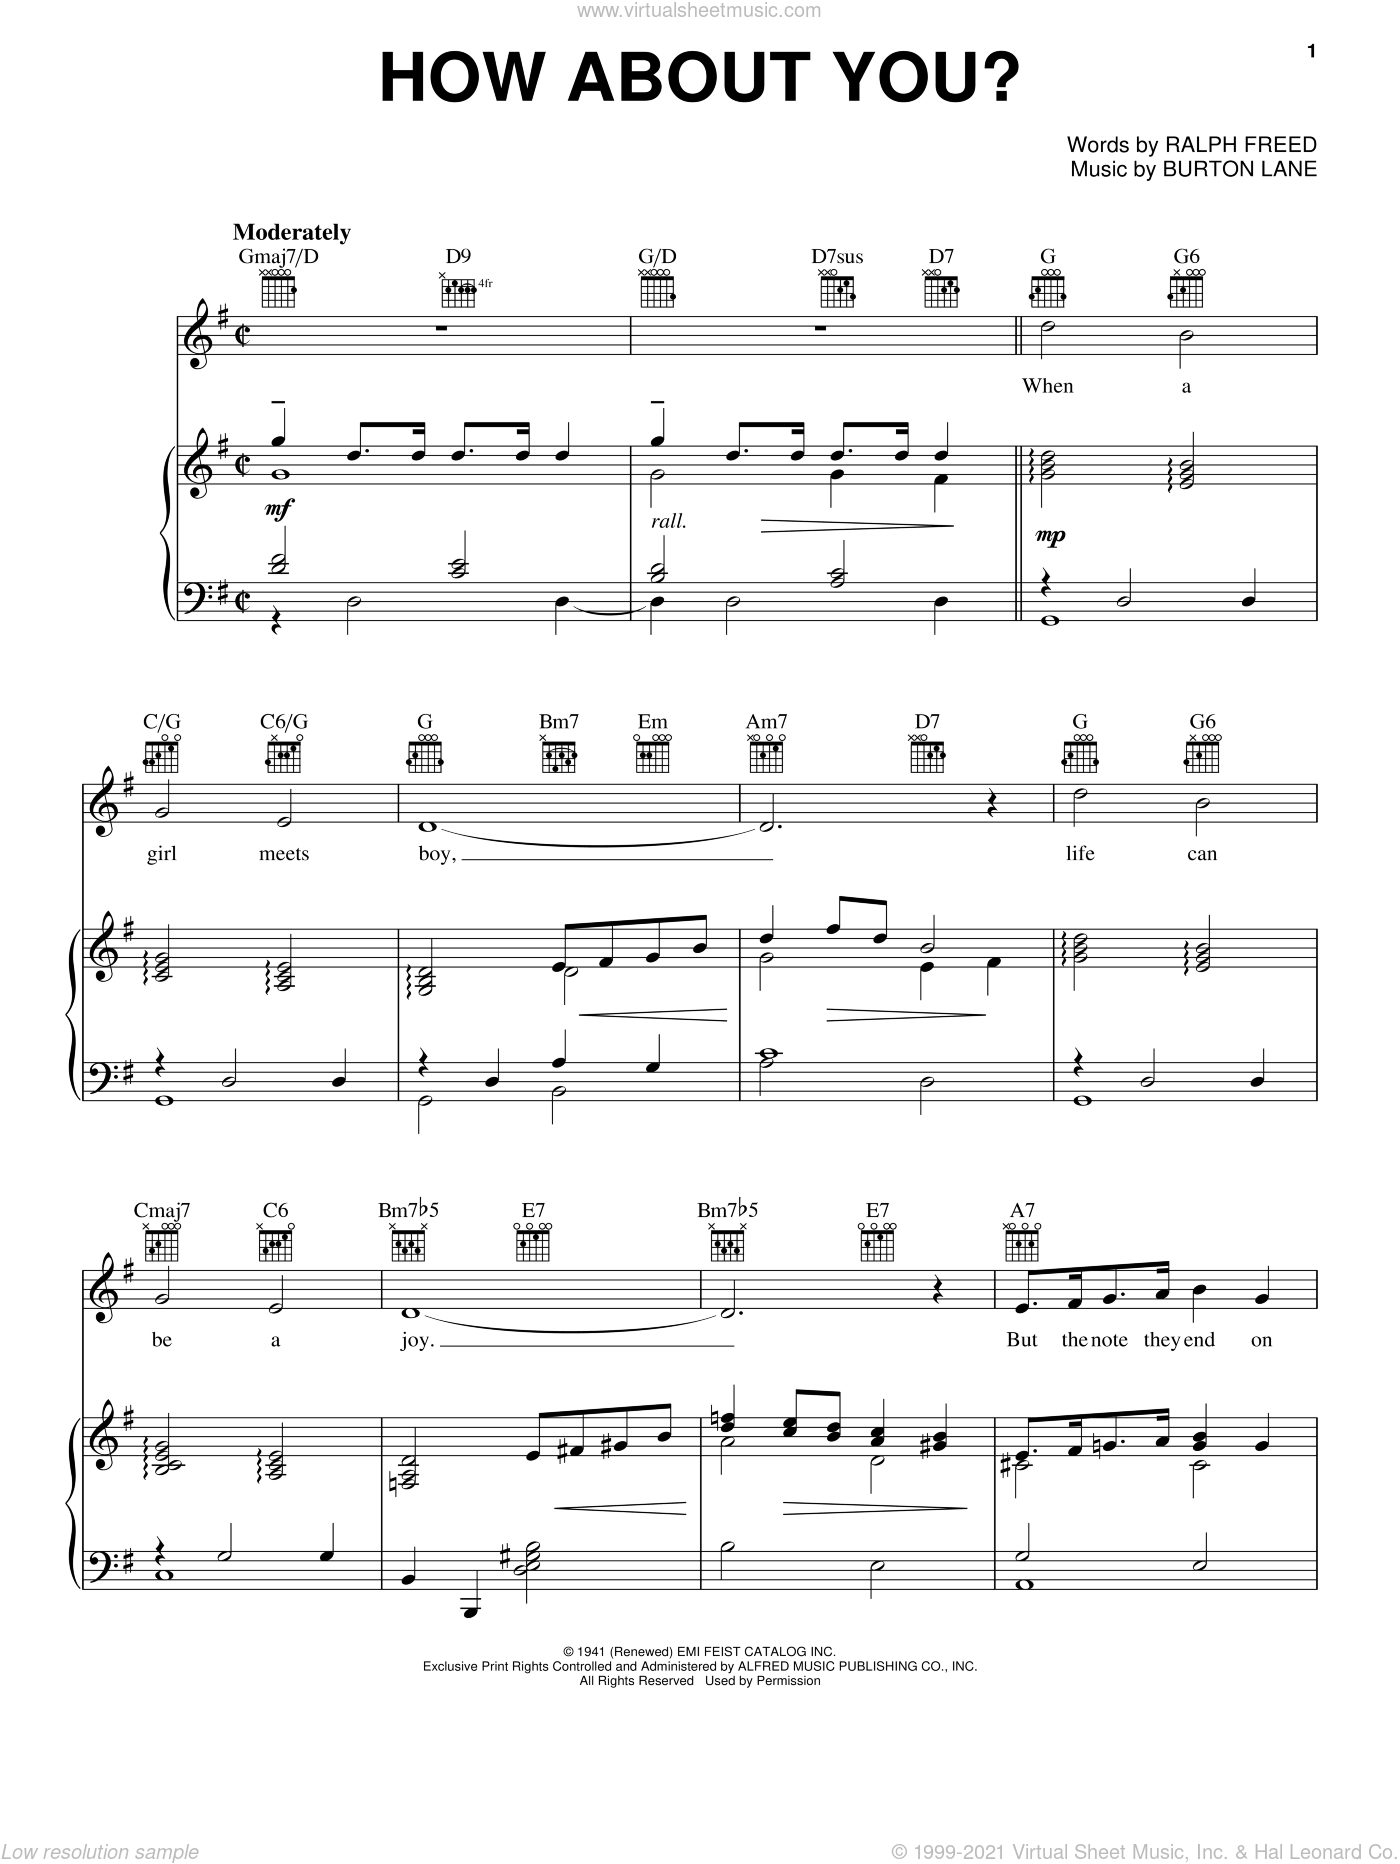 How About You? sheet music for voice, piano or guitar by Ralph Freed